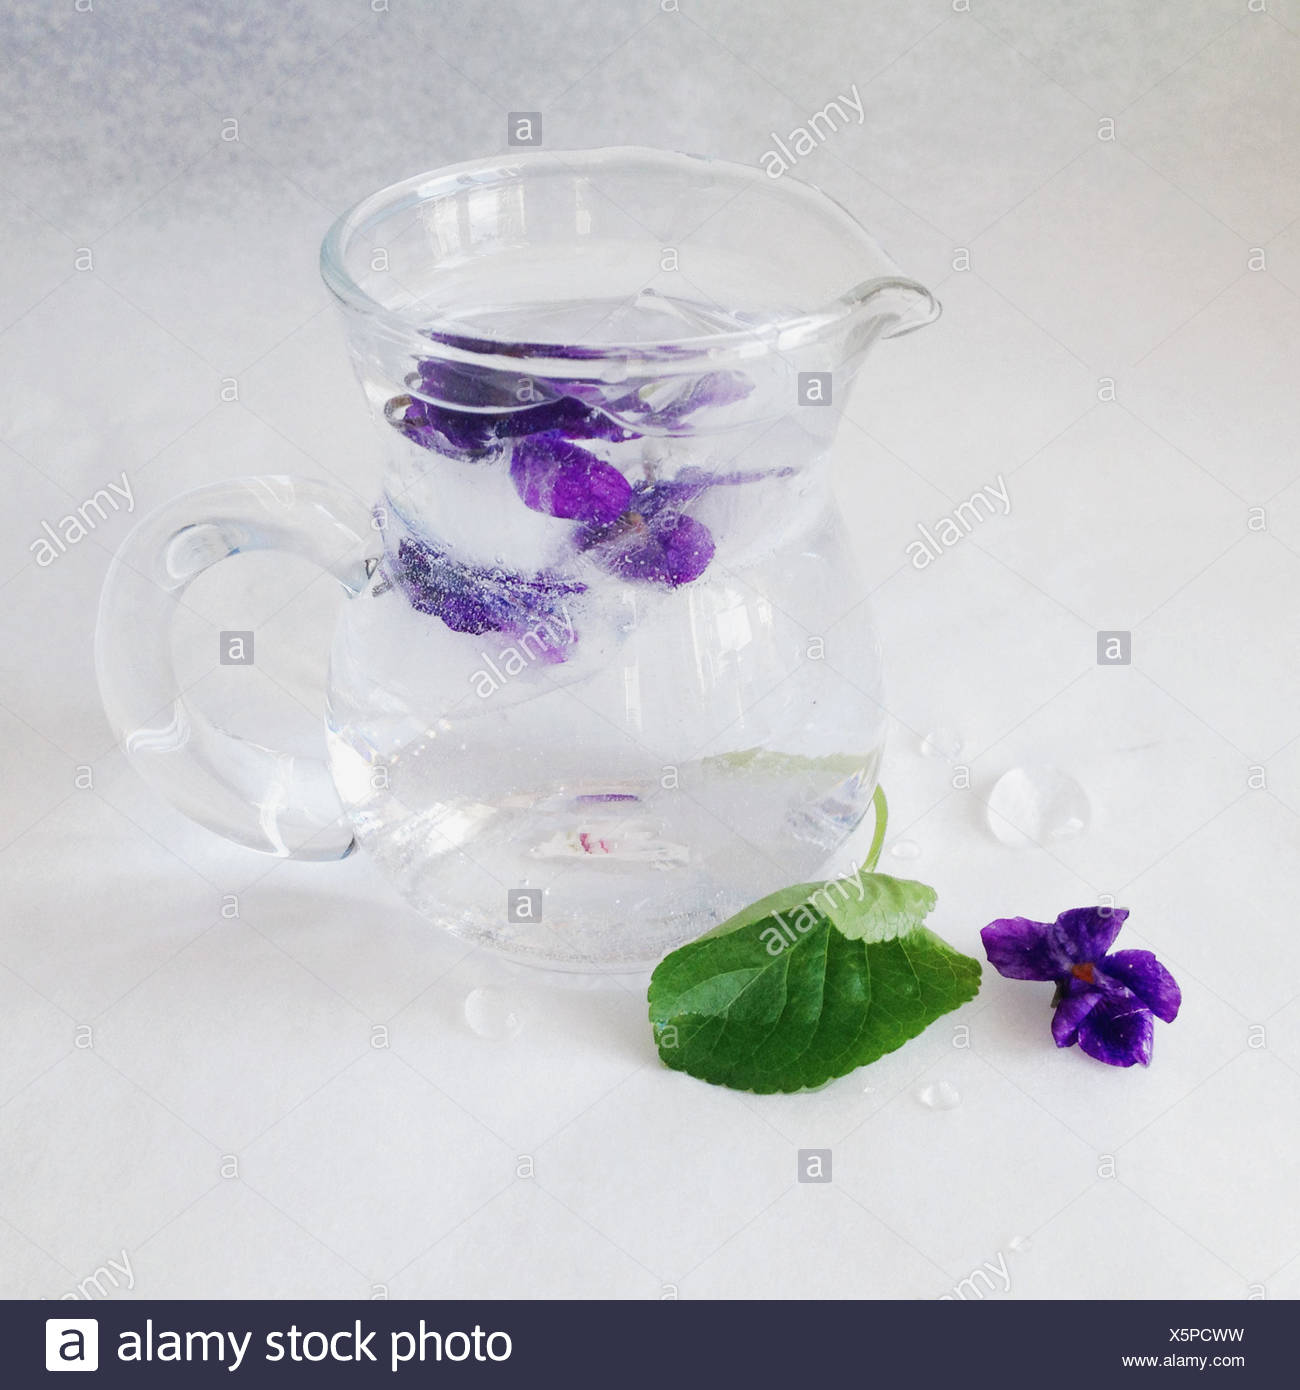 Edible Violet In Ice - Stock Image